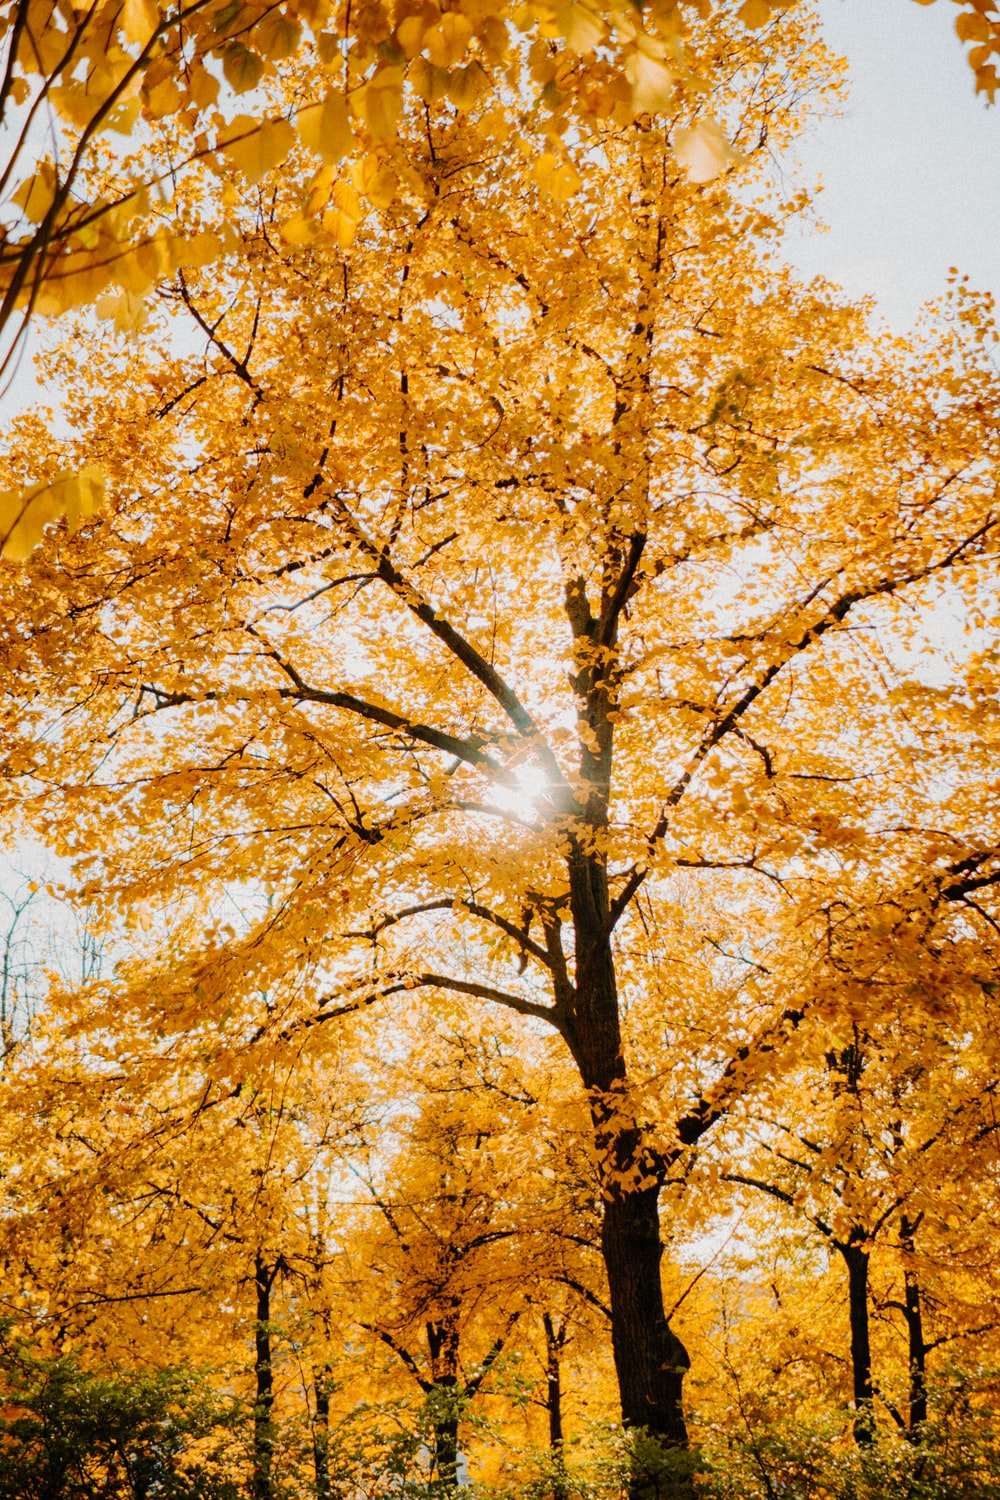 yellow leaf trees under blue sky during daytime